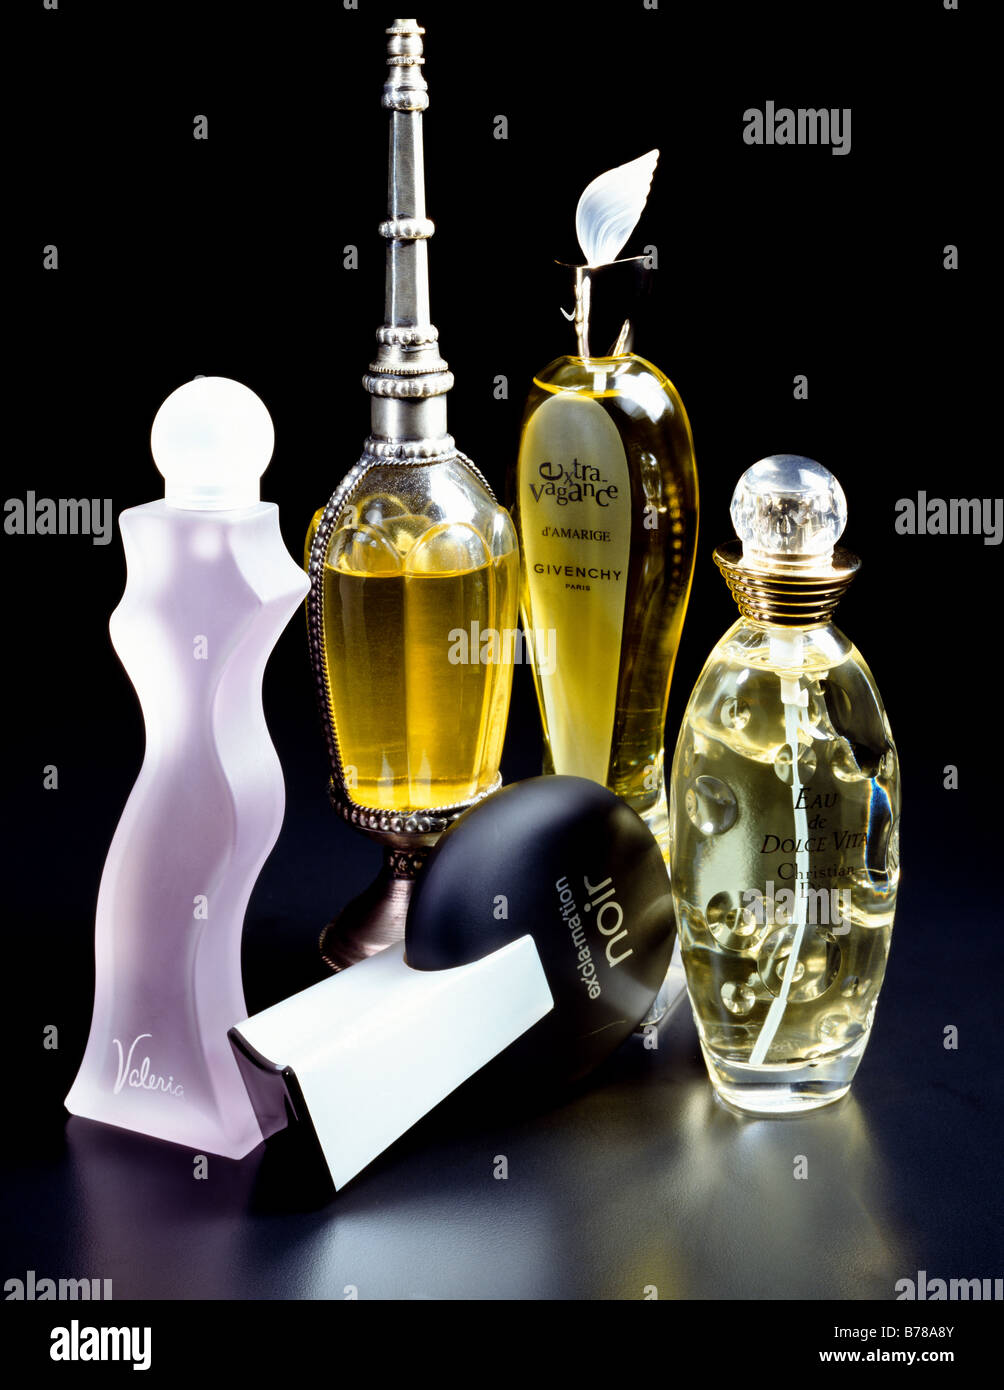 High Class Products Stock Photos & High Class Products Stock